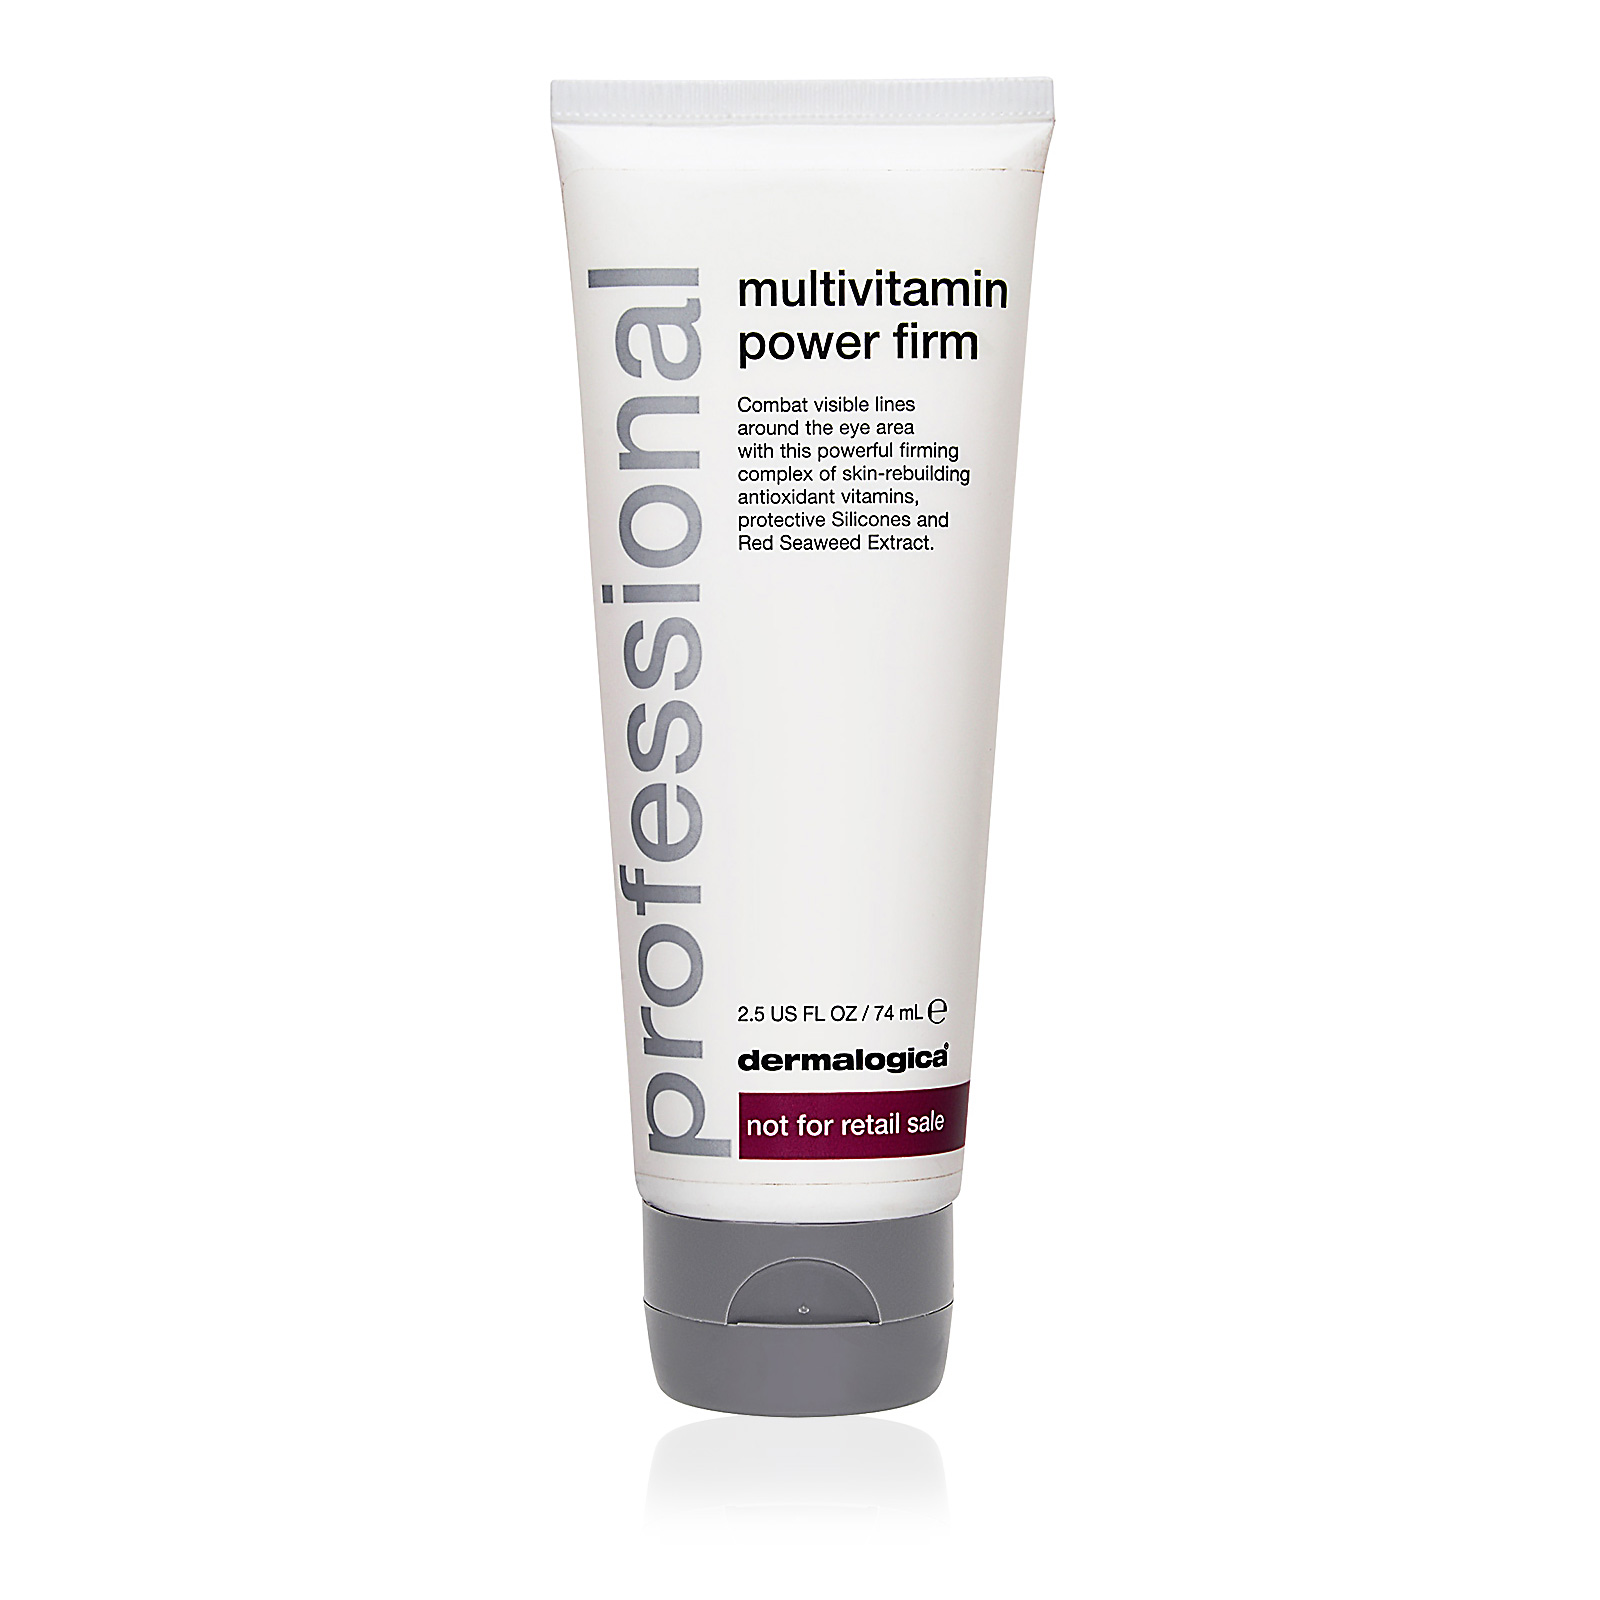 Multivitamin Power Firm (For Eye and Lip)